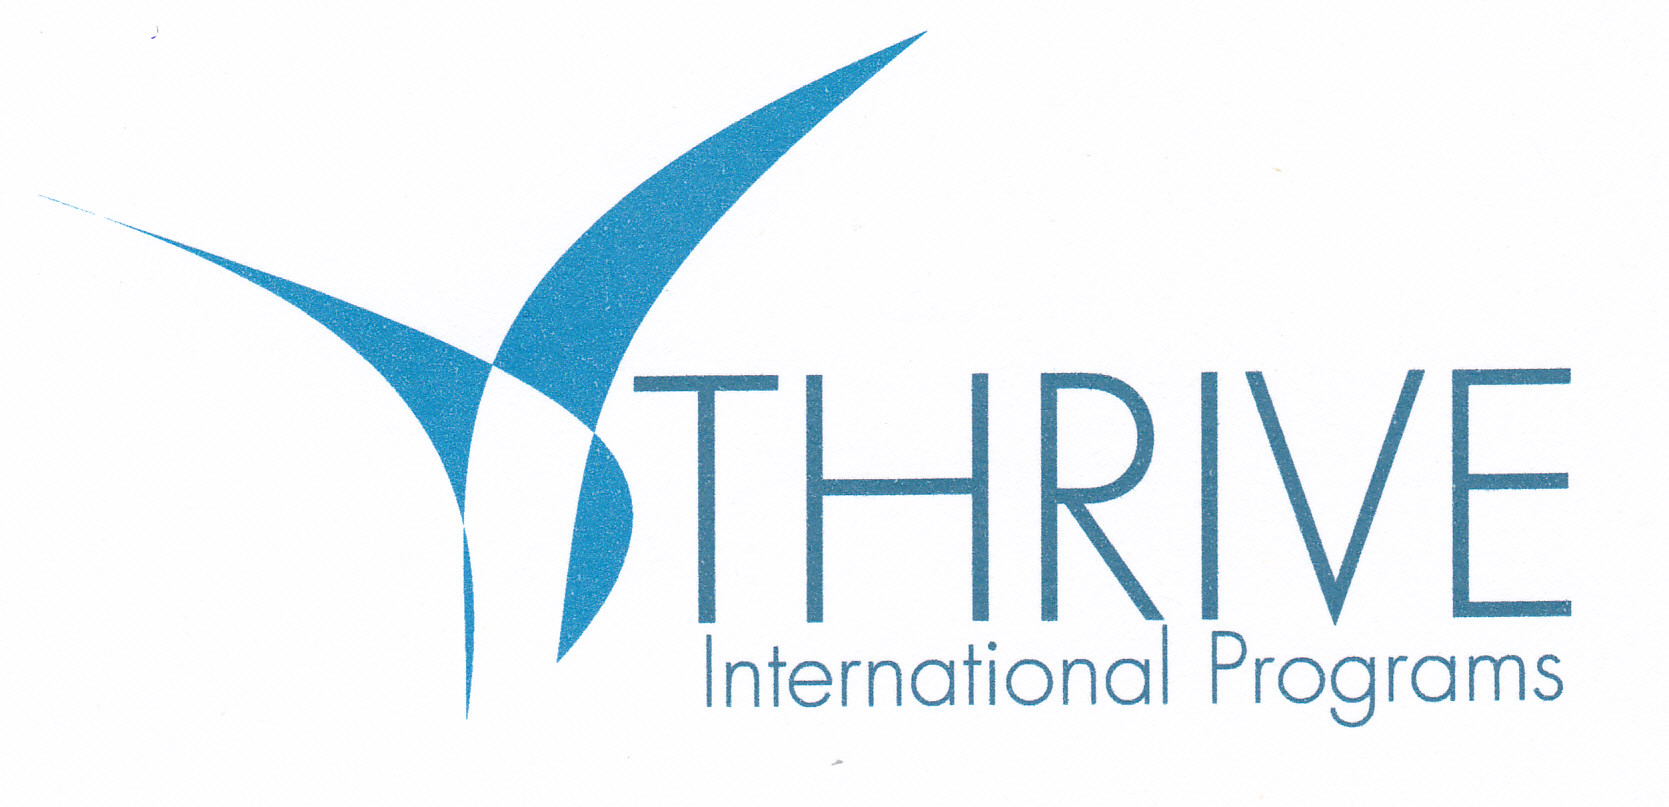 Thrive International Programs